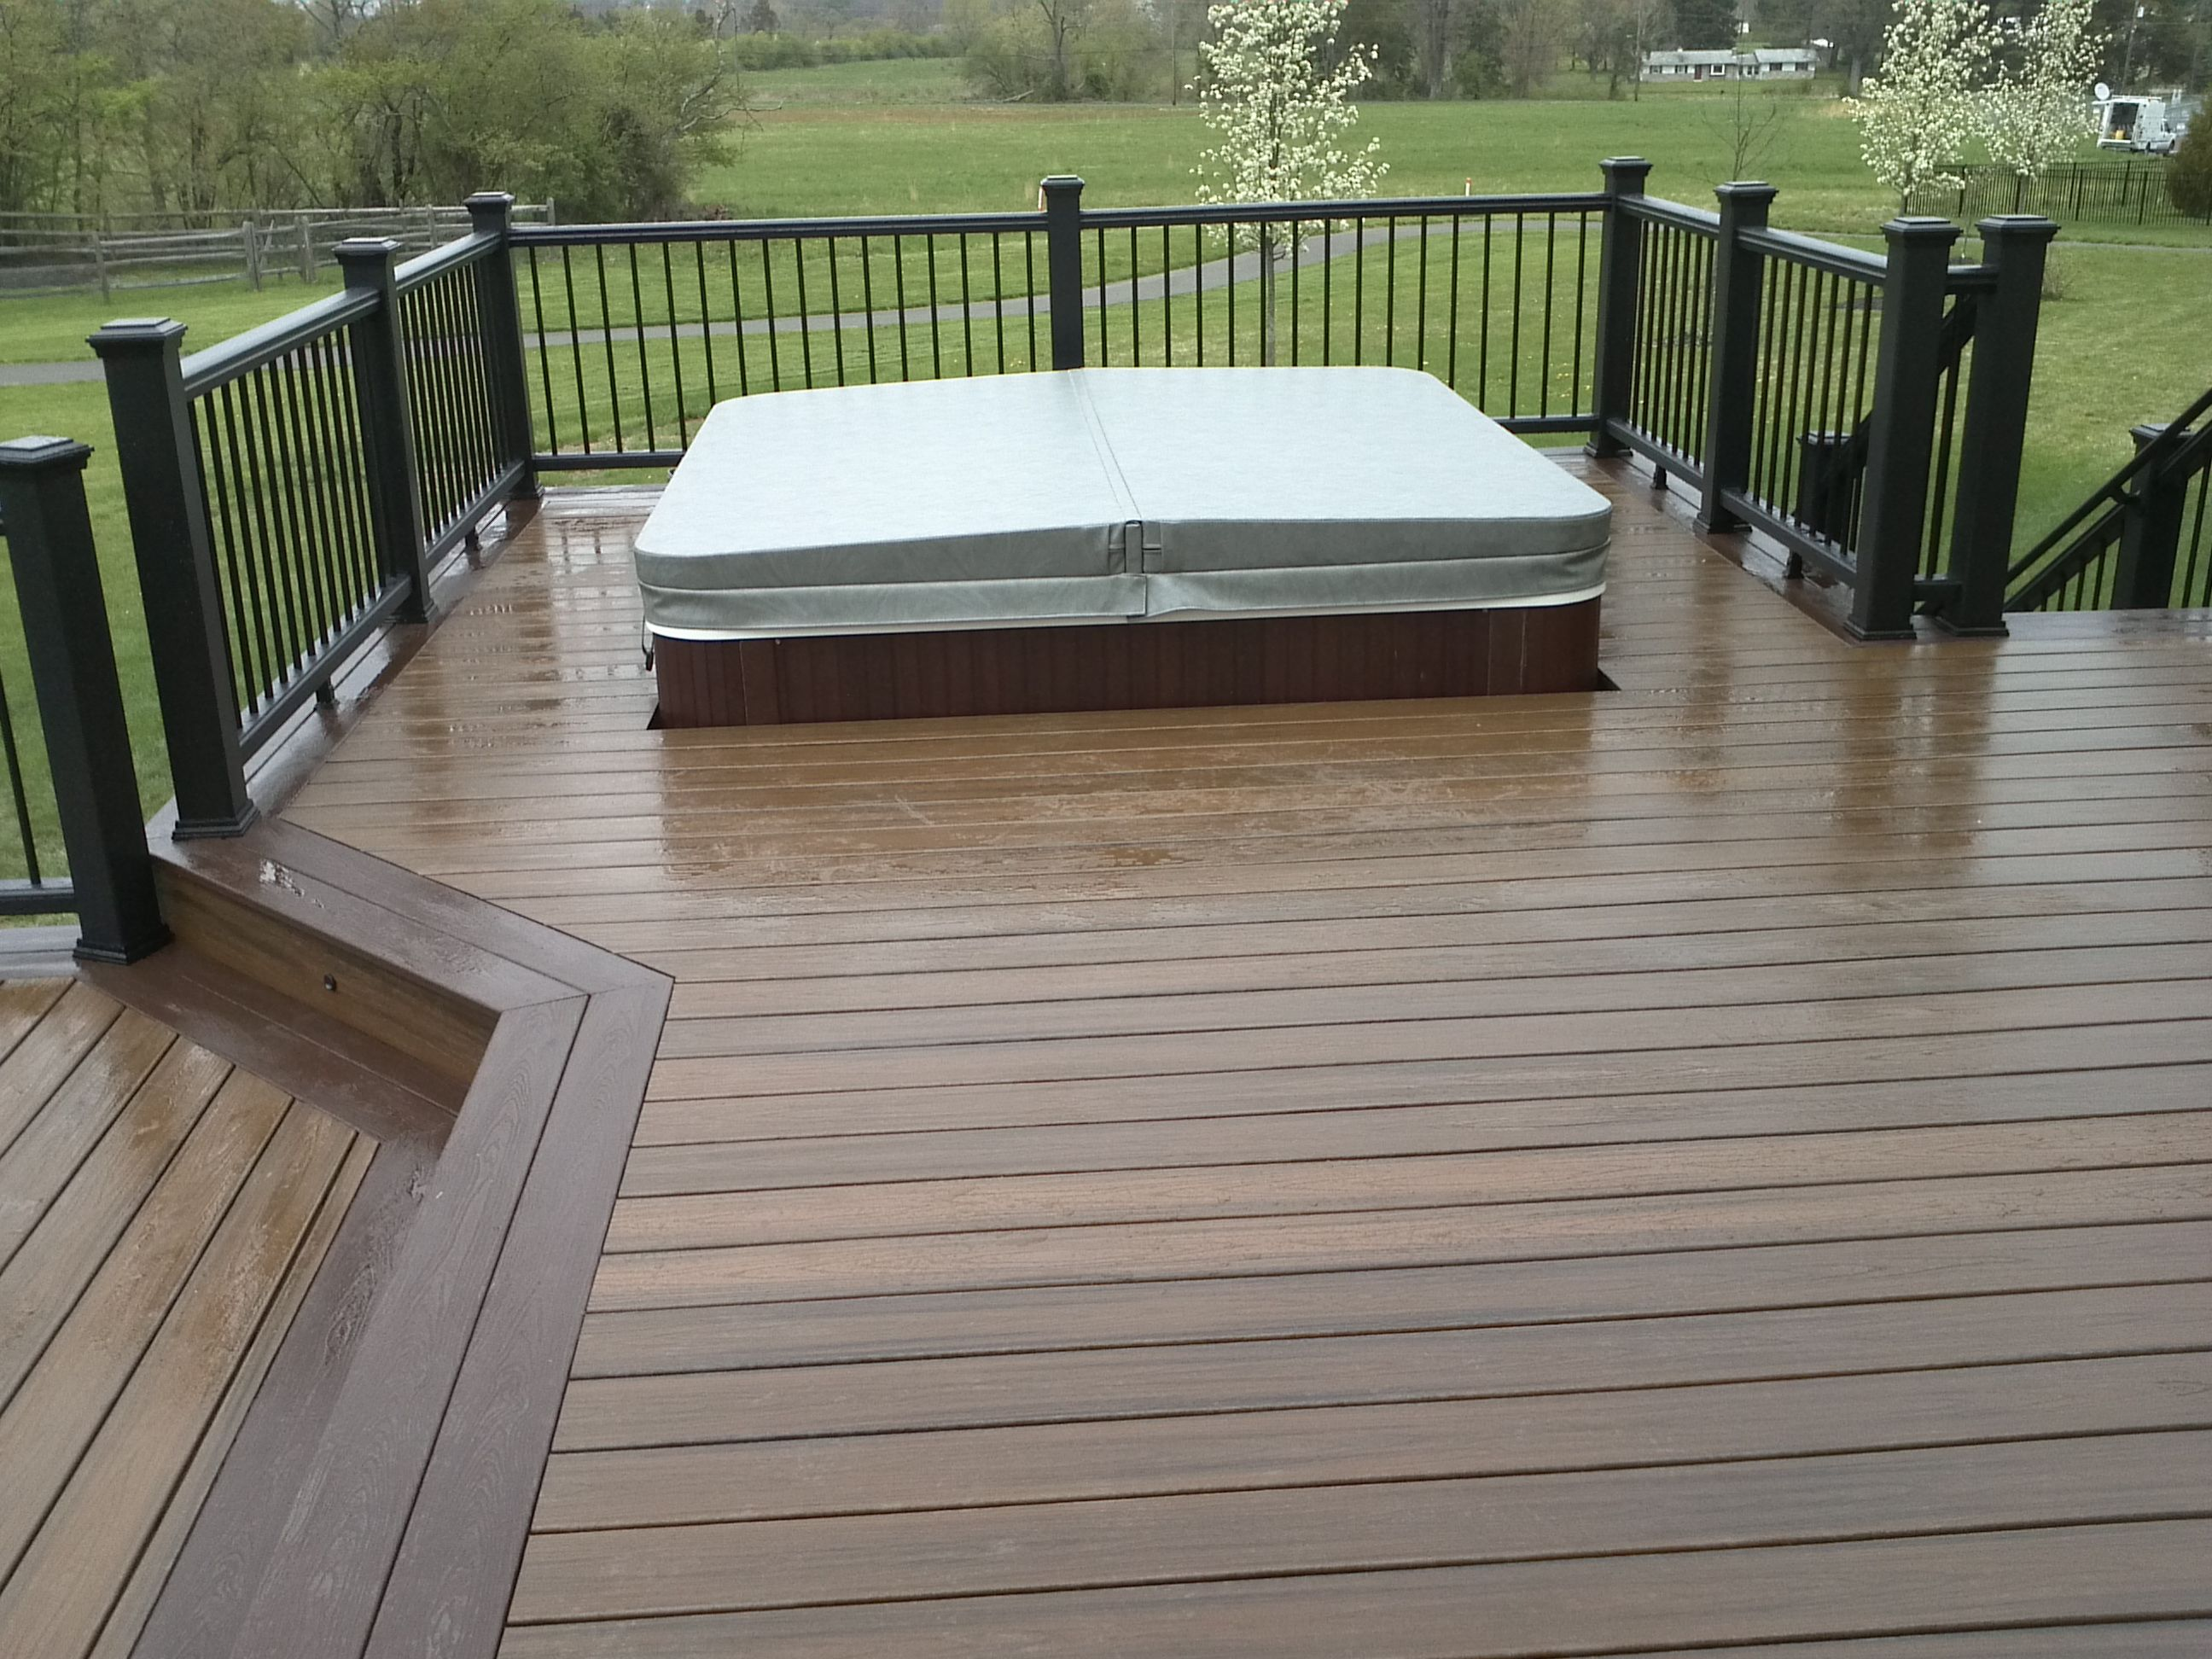 belleville lower very walk wrought railings with one hot is decks owner custom has a overlooking carpentry the tub e here balcony near completed iron t happy p deck